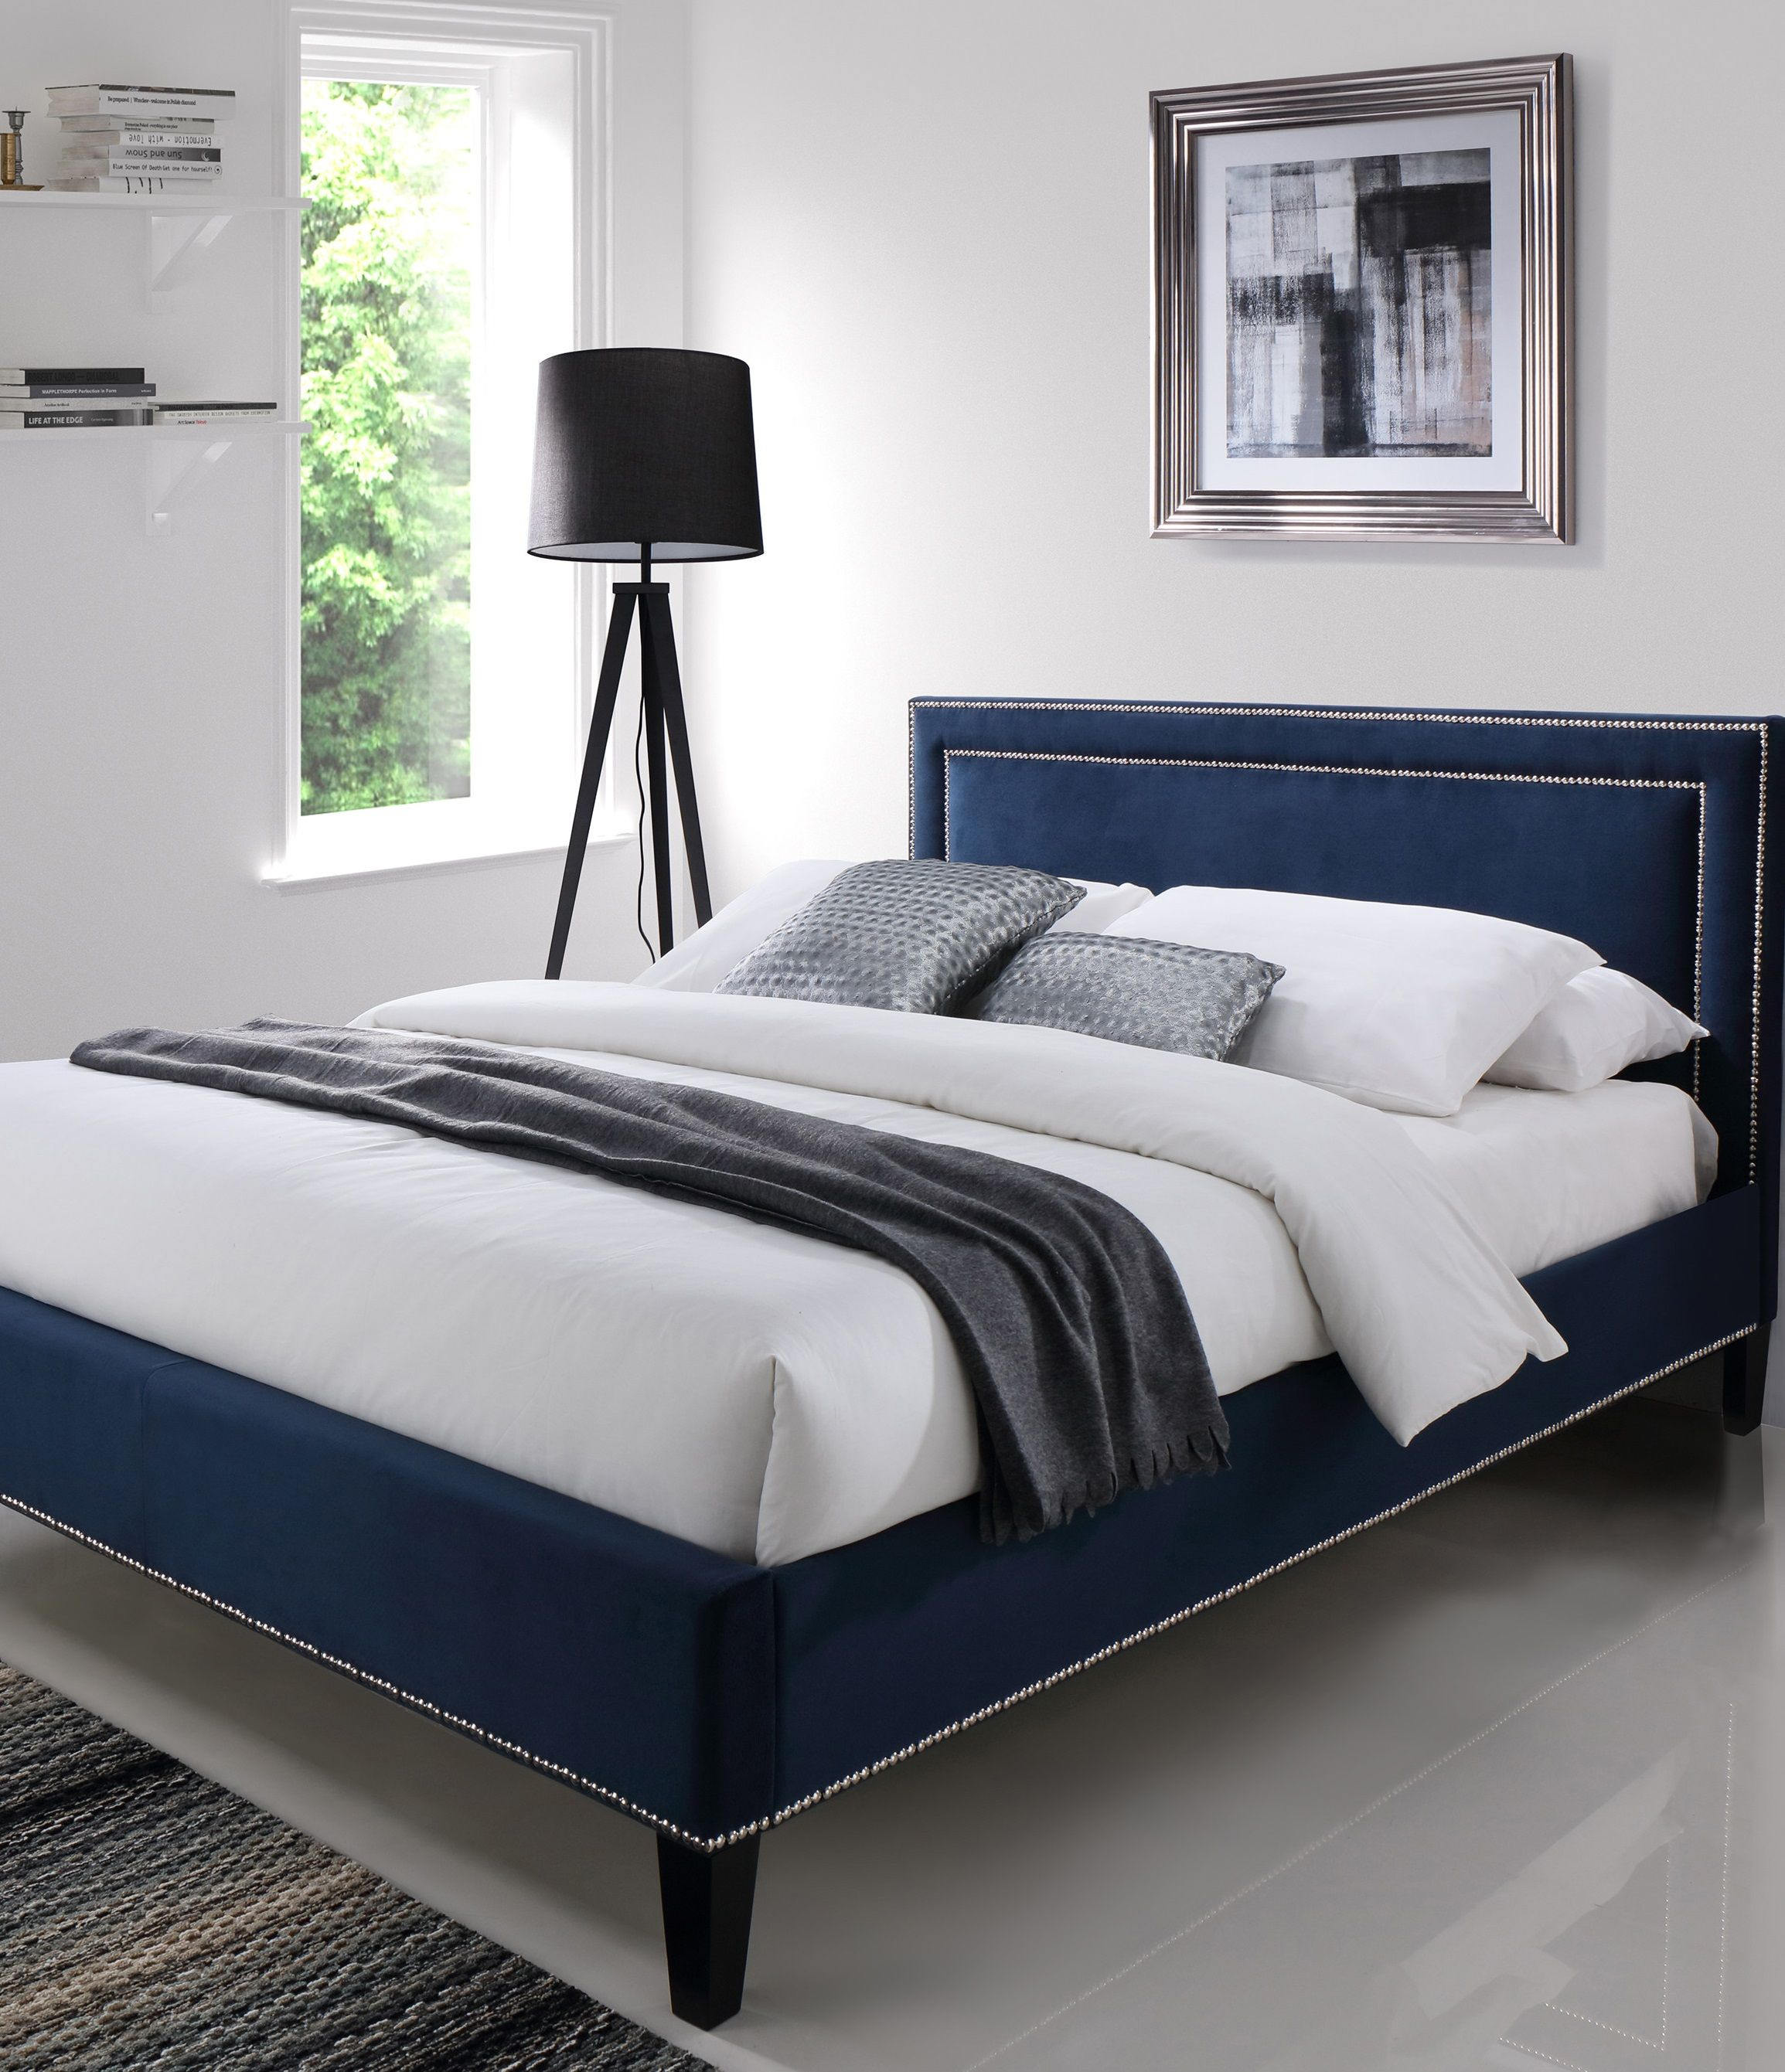 High Quality Bed With A Touch Of Blue Velvet